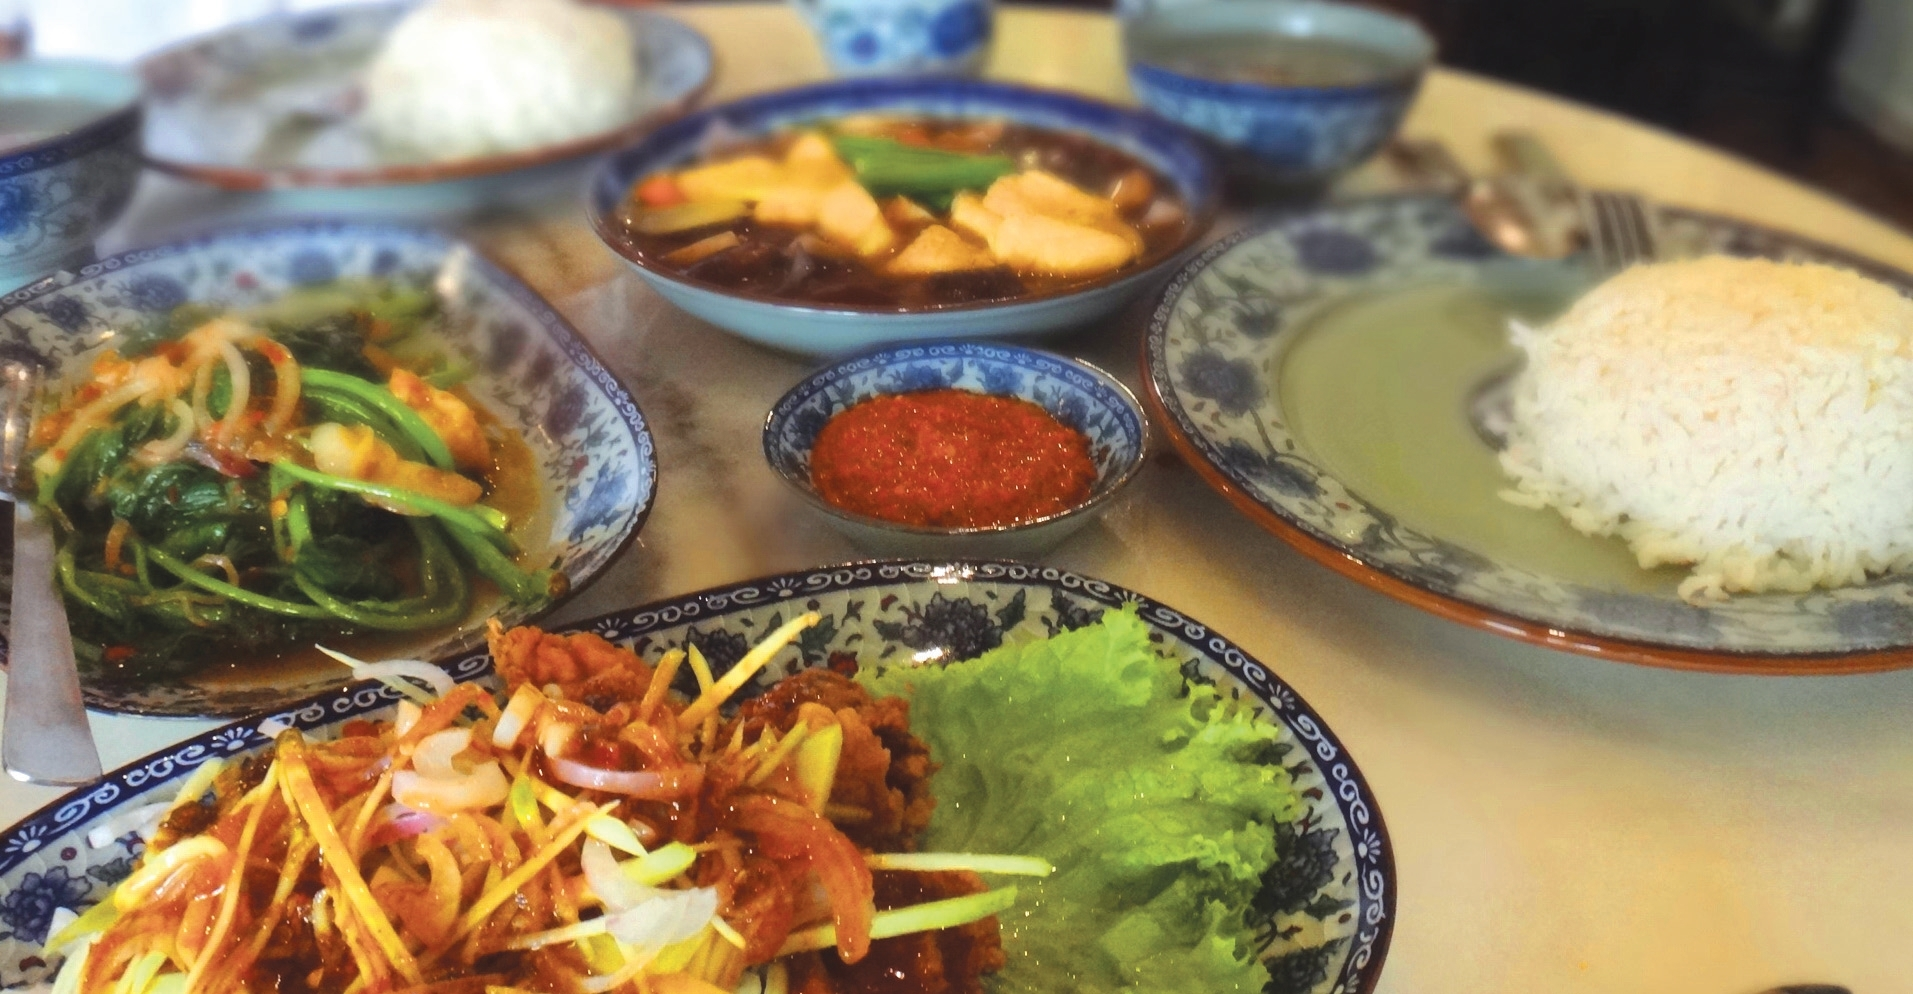 Get up close to the Peranakan culture through delicious Nyonya food